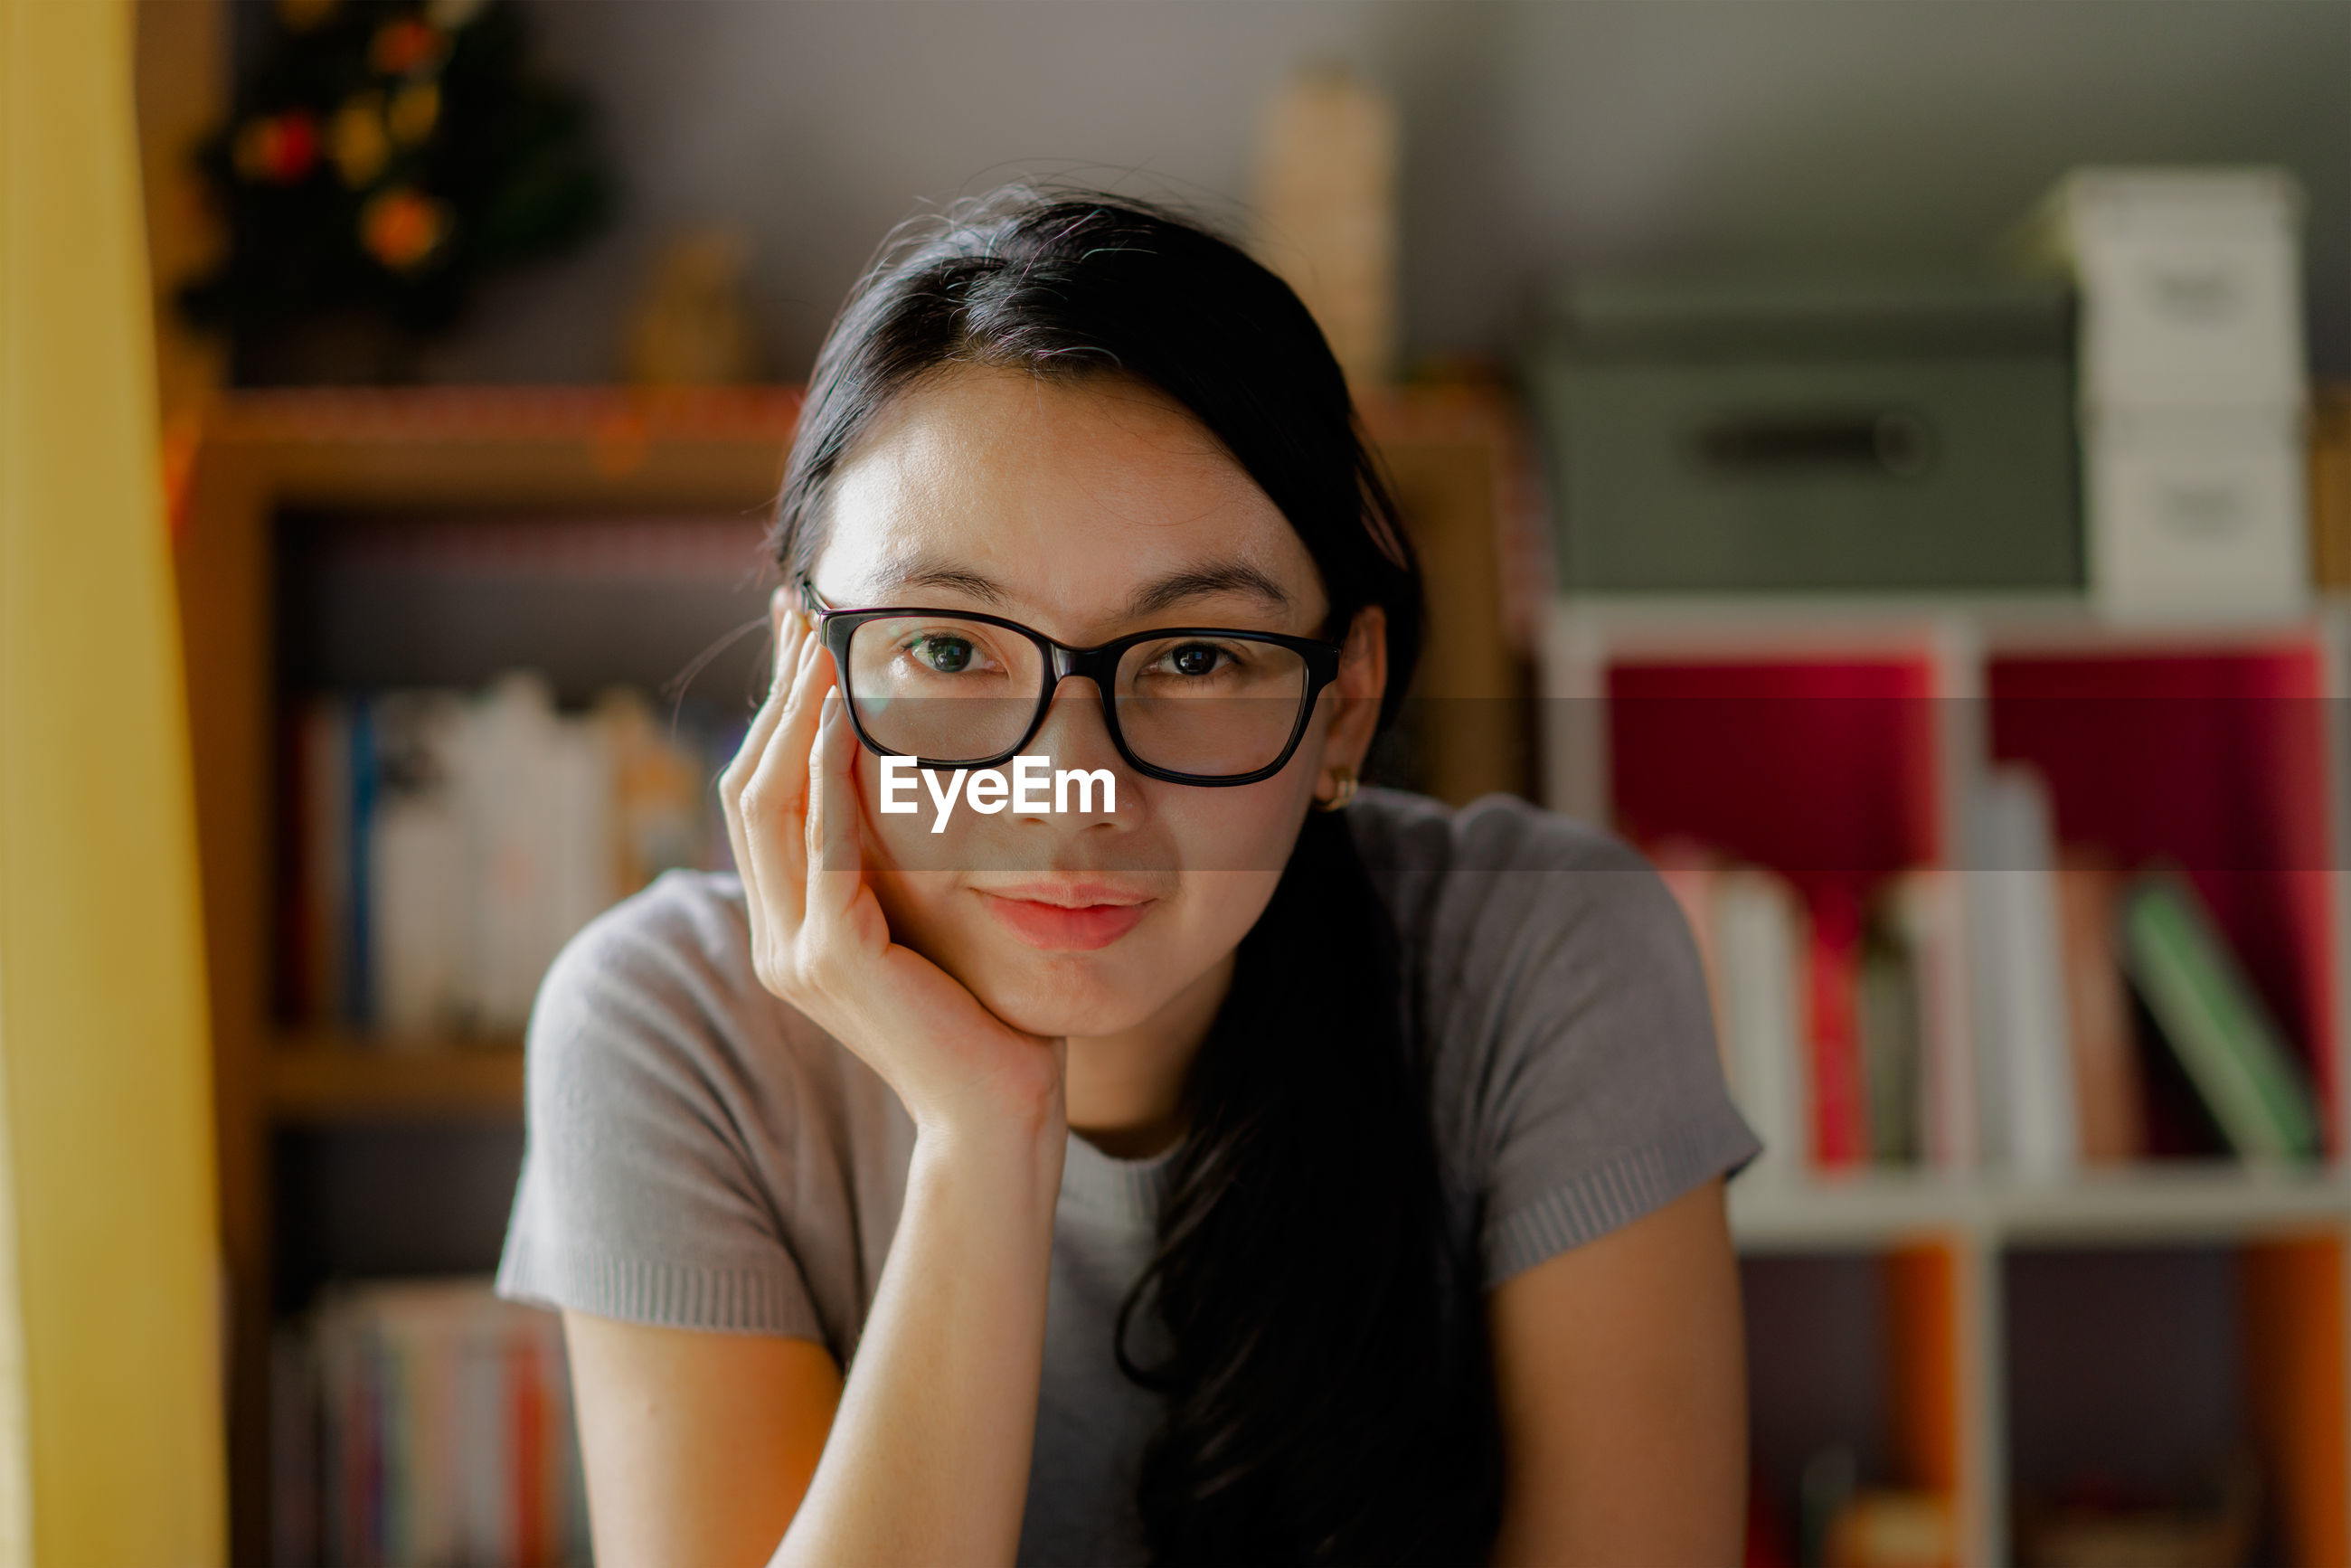 Business woman wearing glasses and smile